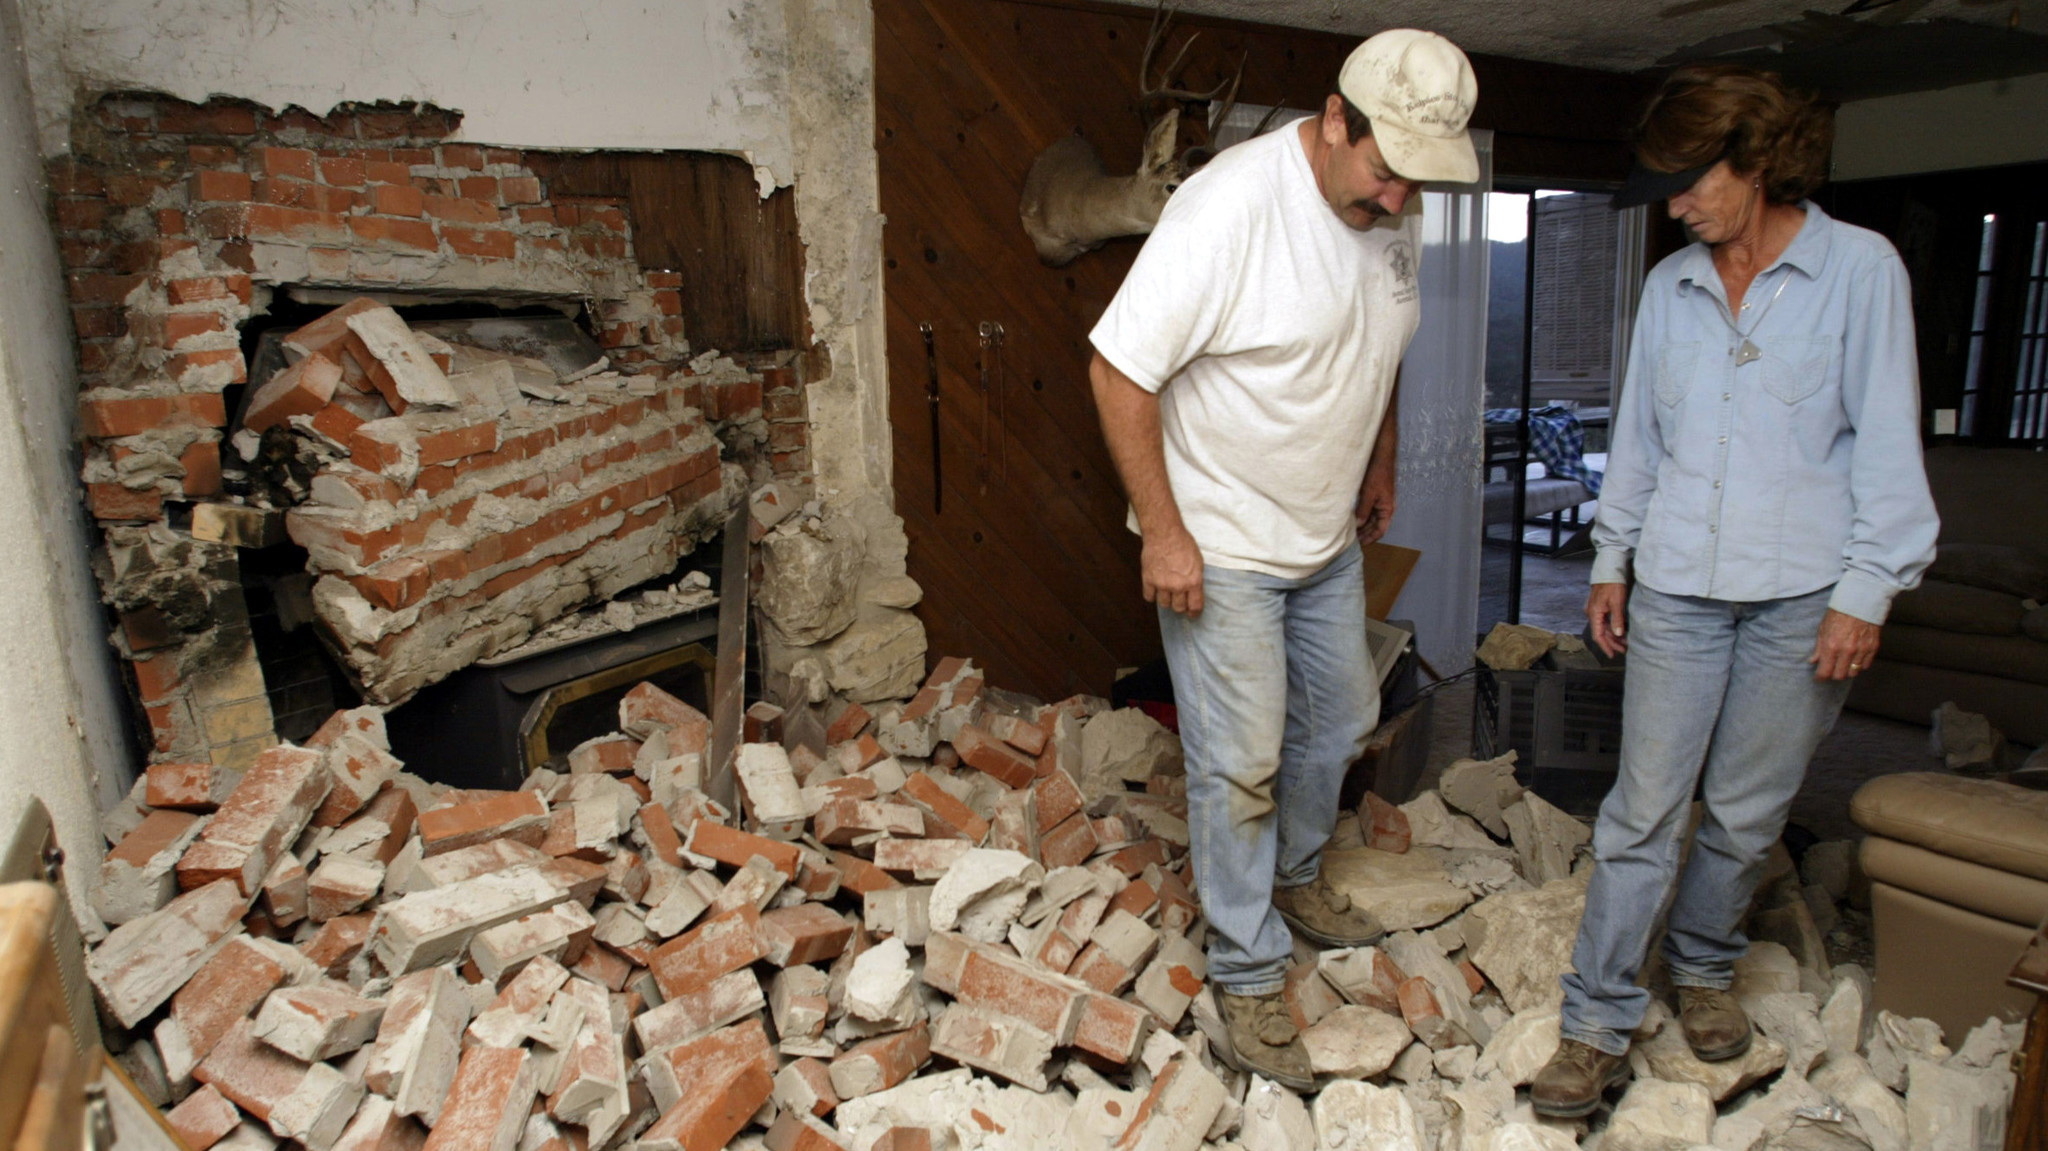 Jim and Laurie Batson survey the damage to their Parkfield, Calif., home in 2004. The Batsons had lived in the home, 400 yards from the San Andreas Fault, for 15 years and had not suffered damage in earlier quakes.